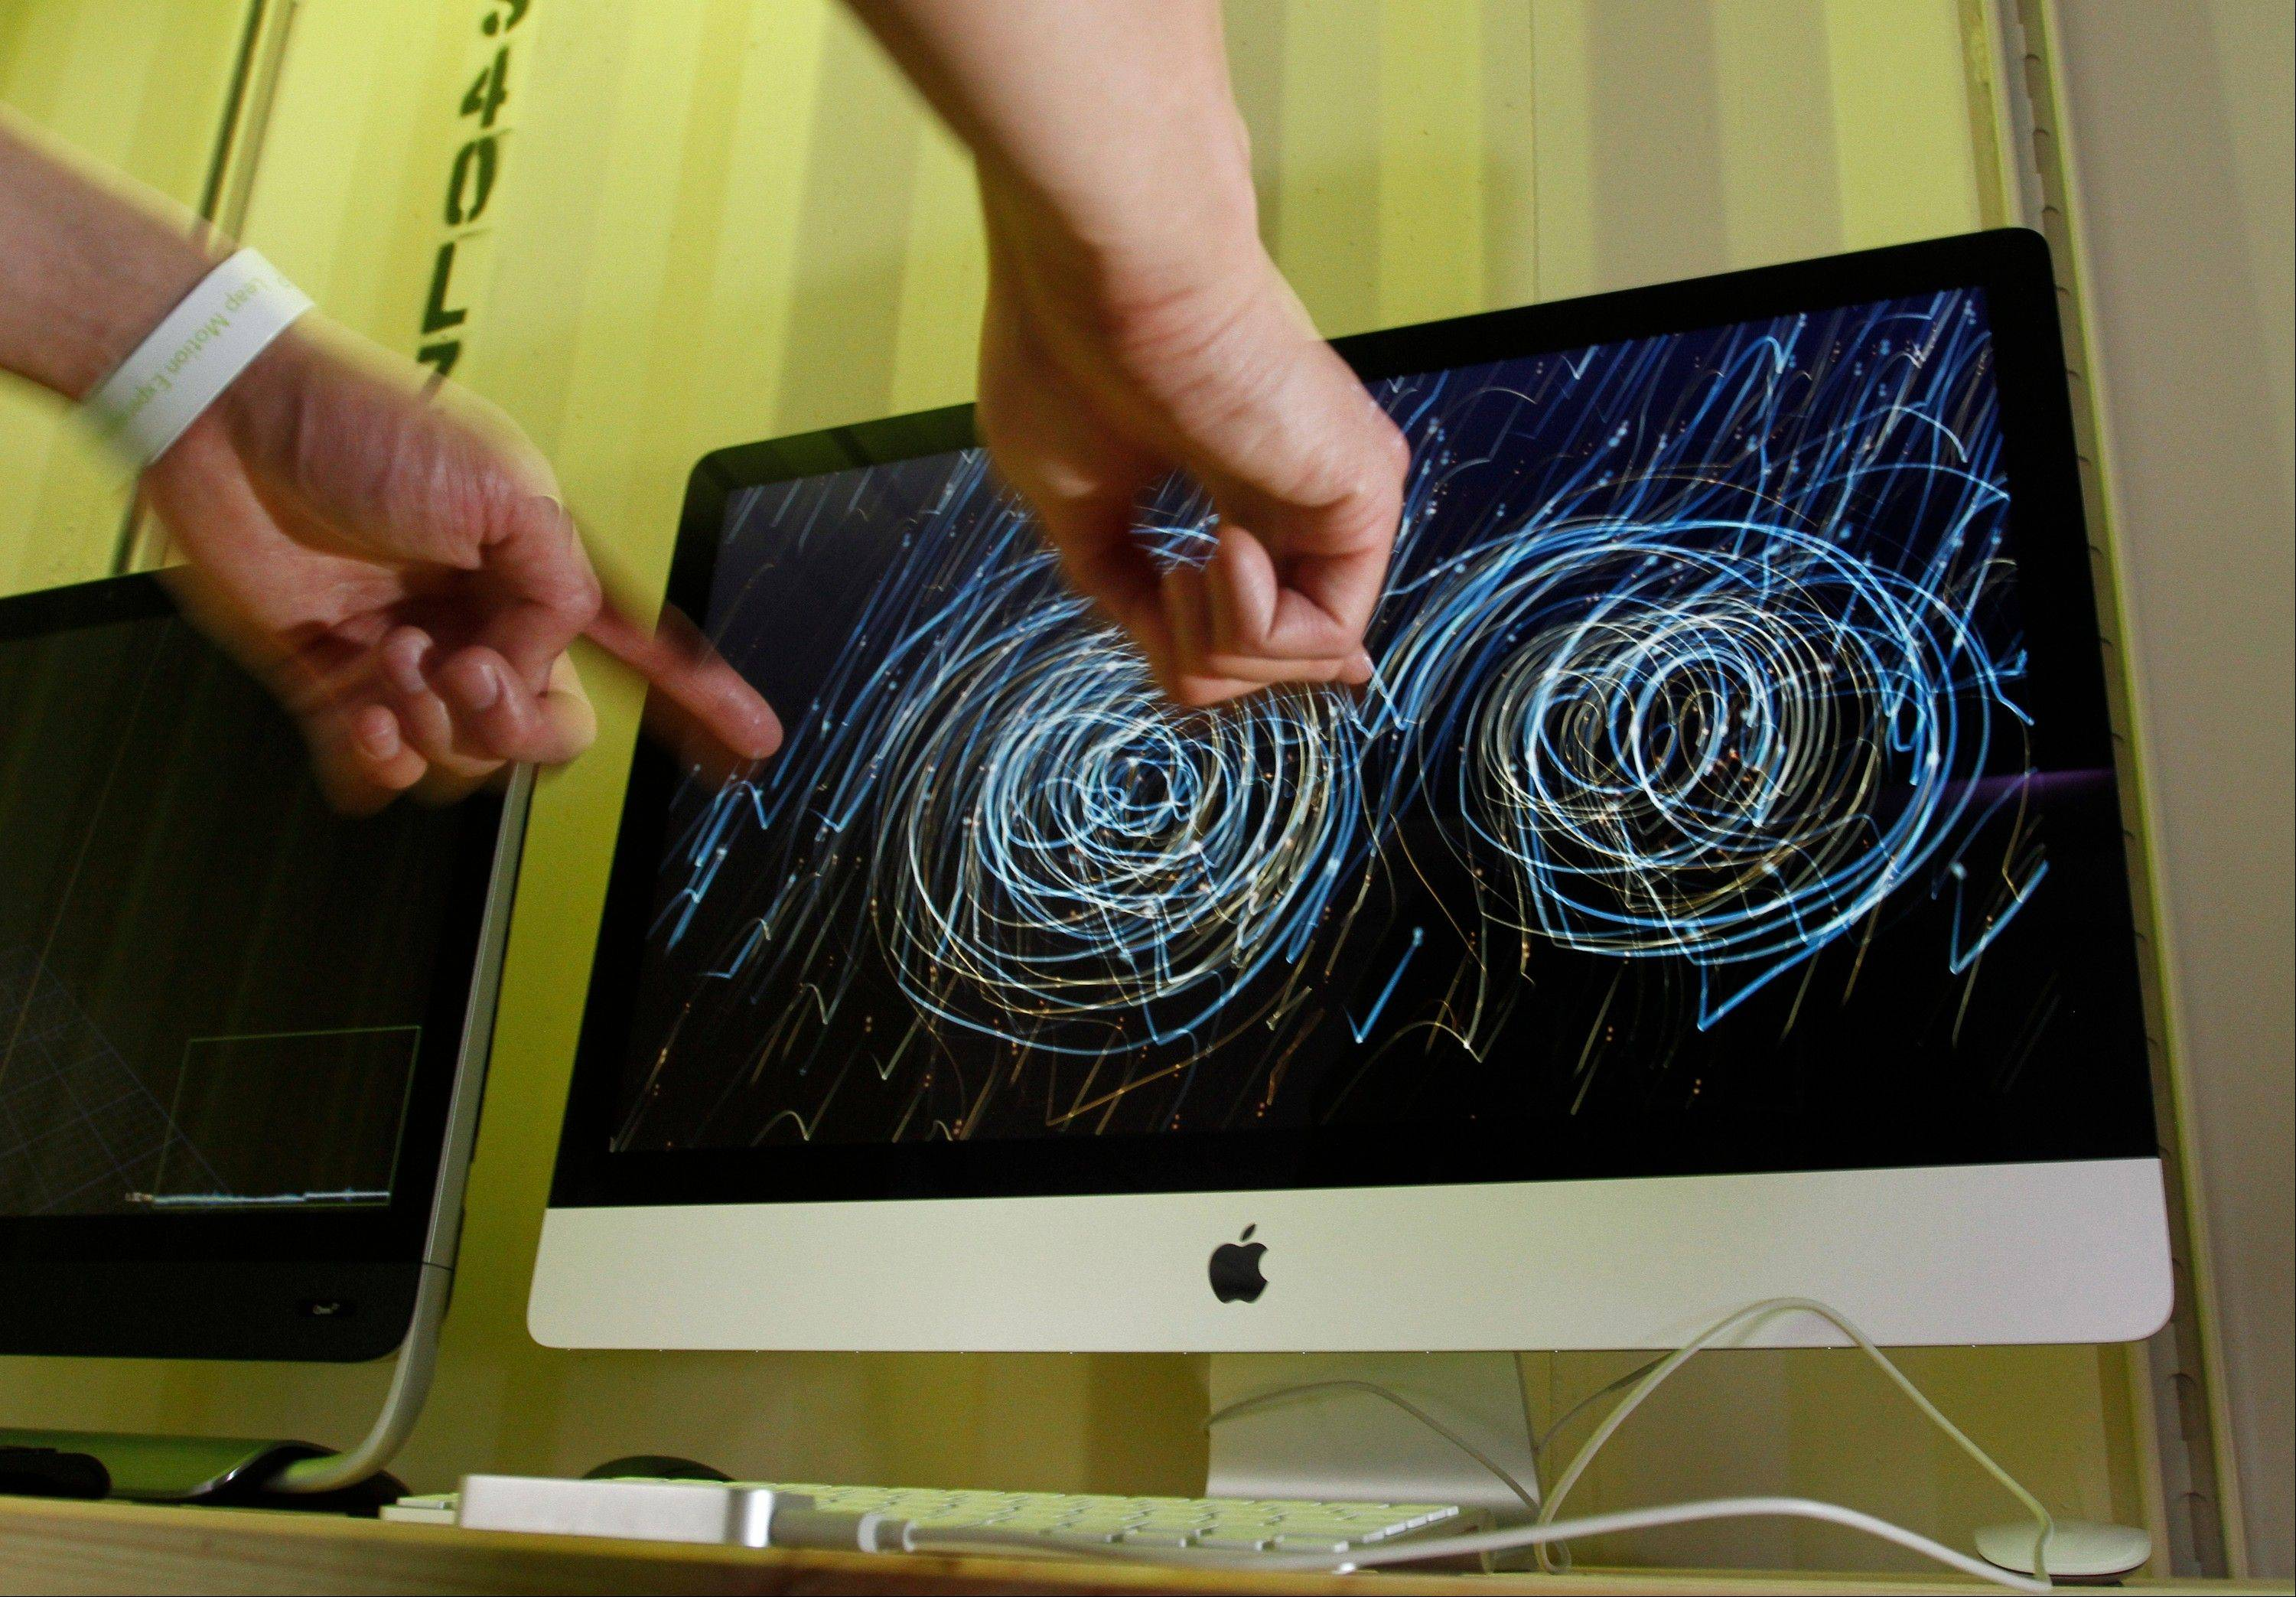 A SXSW Interactive Festival attendee samples LeapMotion's 3D motion control on Saturday, March 9, 2013 in Austin, Texas. The flash drive-sized device utilizes only hand movement to control a computer.(AP Photo/Jack Plunkett)